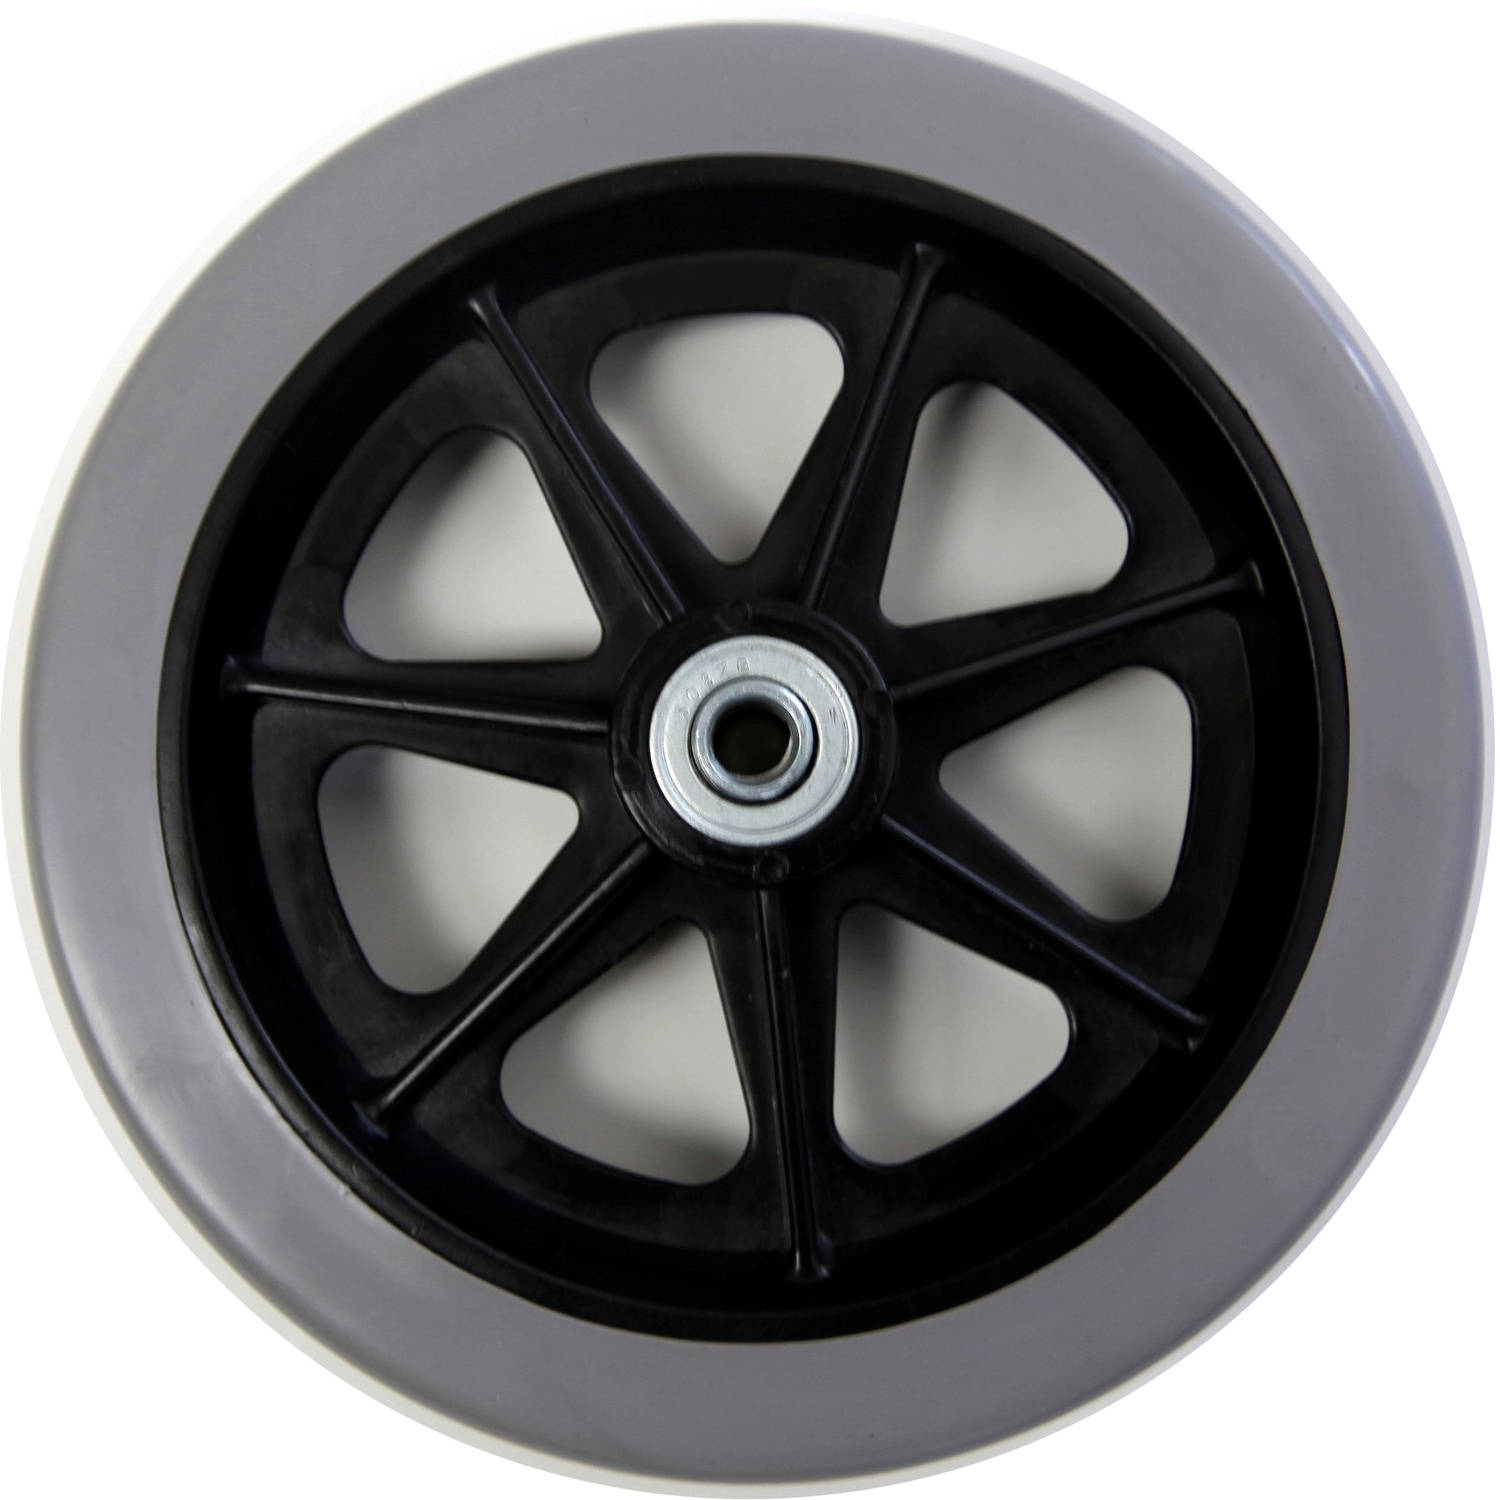 "Karman 6"" universal solid casters for Rollator Walker"